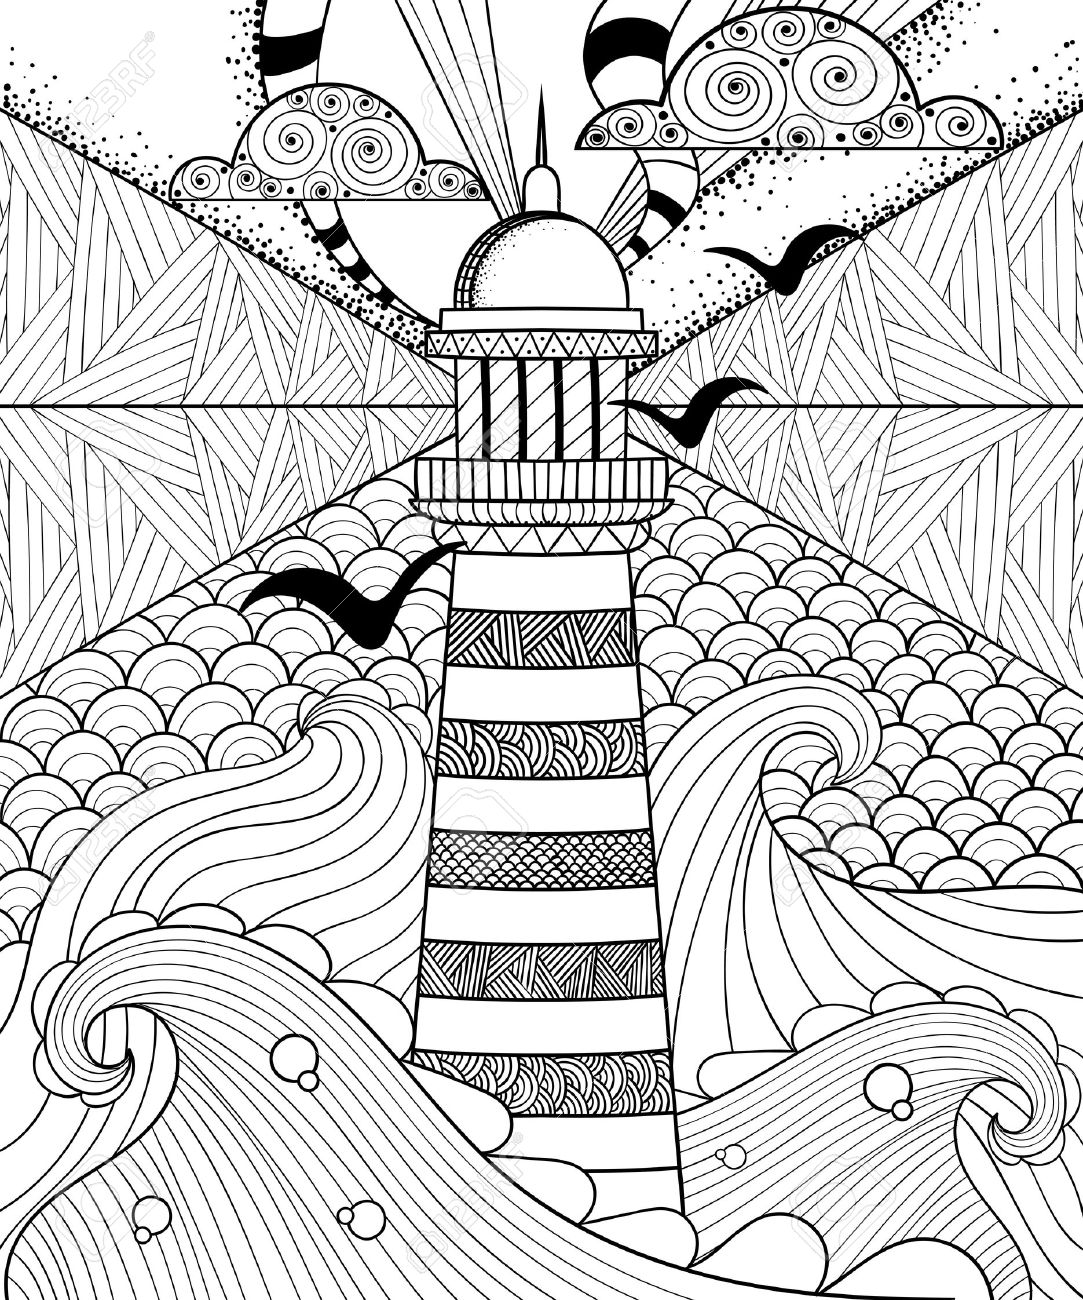 1083x1300 Hand Drawn Artistically Ethnic Ornamental Patterned Lighthouse